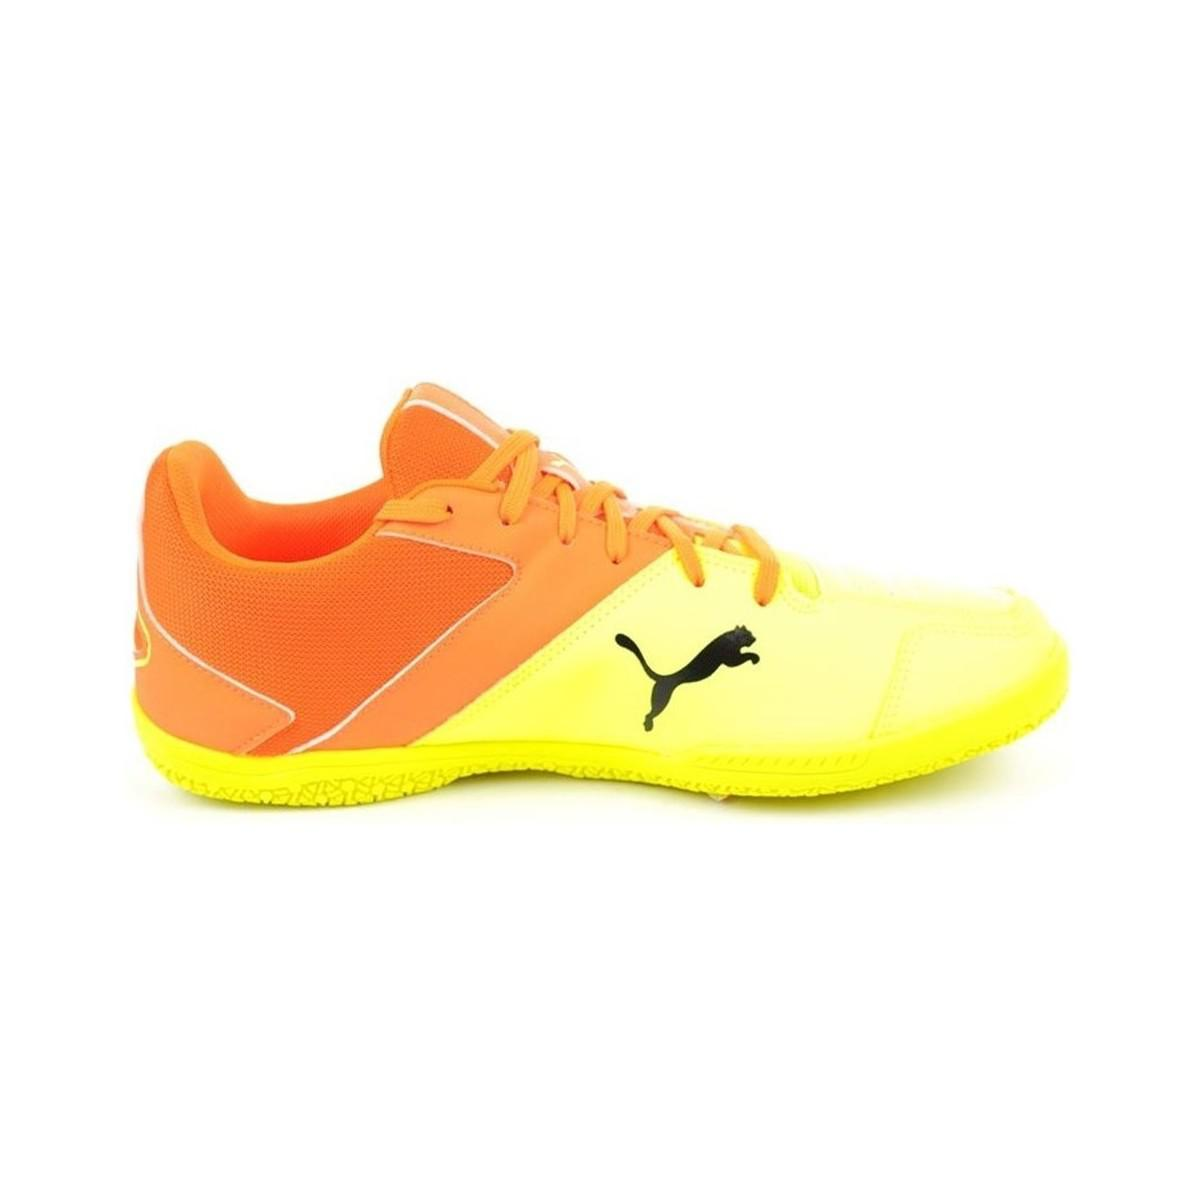 8dfad5a10fe Online Mens Footwear Puma Gavetto Sala Football Shoes Yellow  great quality  5823a 2a6be PUMA. Gavetto Sala Mens Shoes .. ...